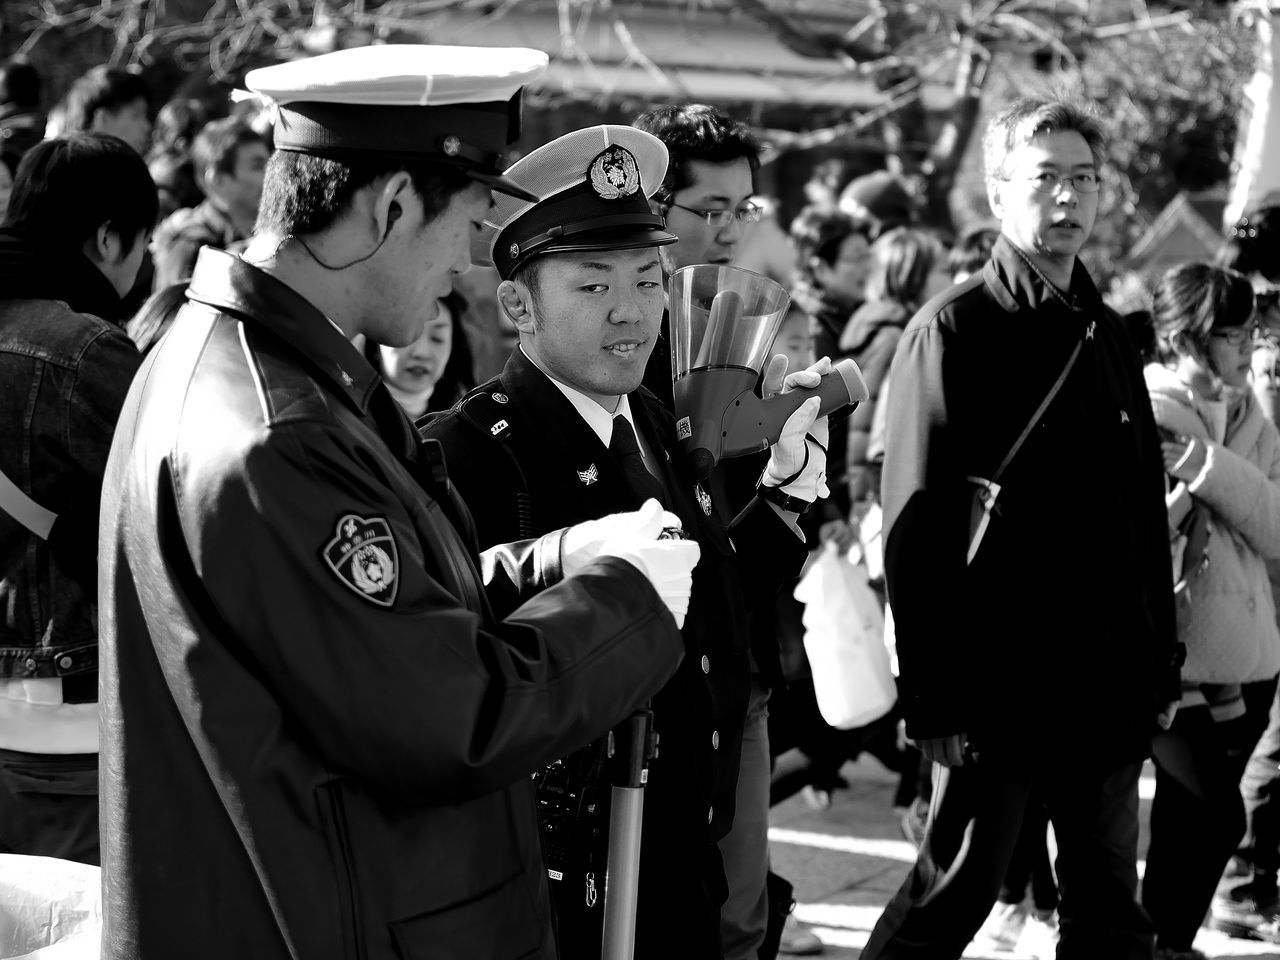 Japan Japan Photography Japanese Culture Japanese Style Japon Policeman 😉 Streetphoto_bw Streetphotography